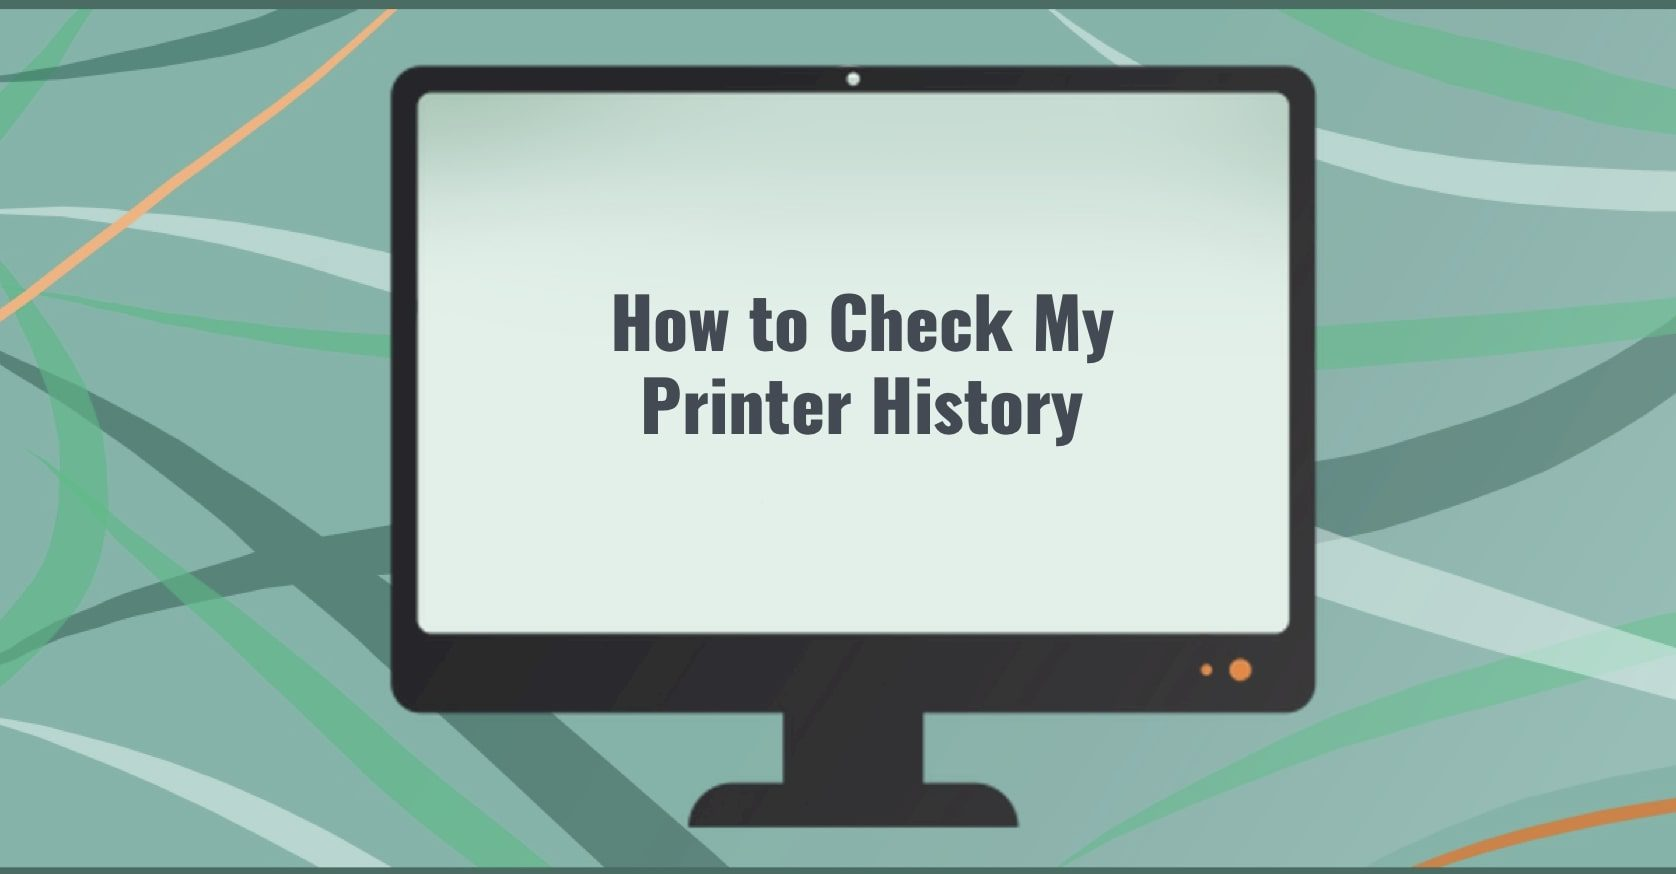 How to Check My Printer History